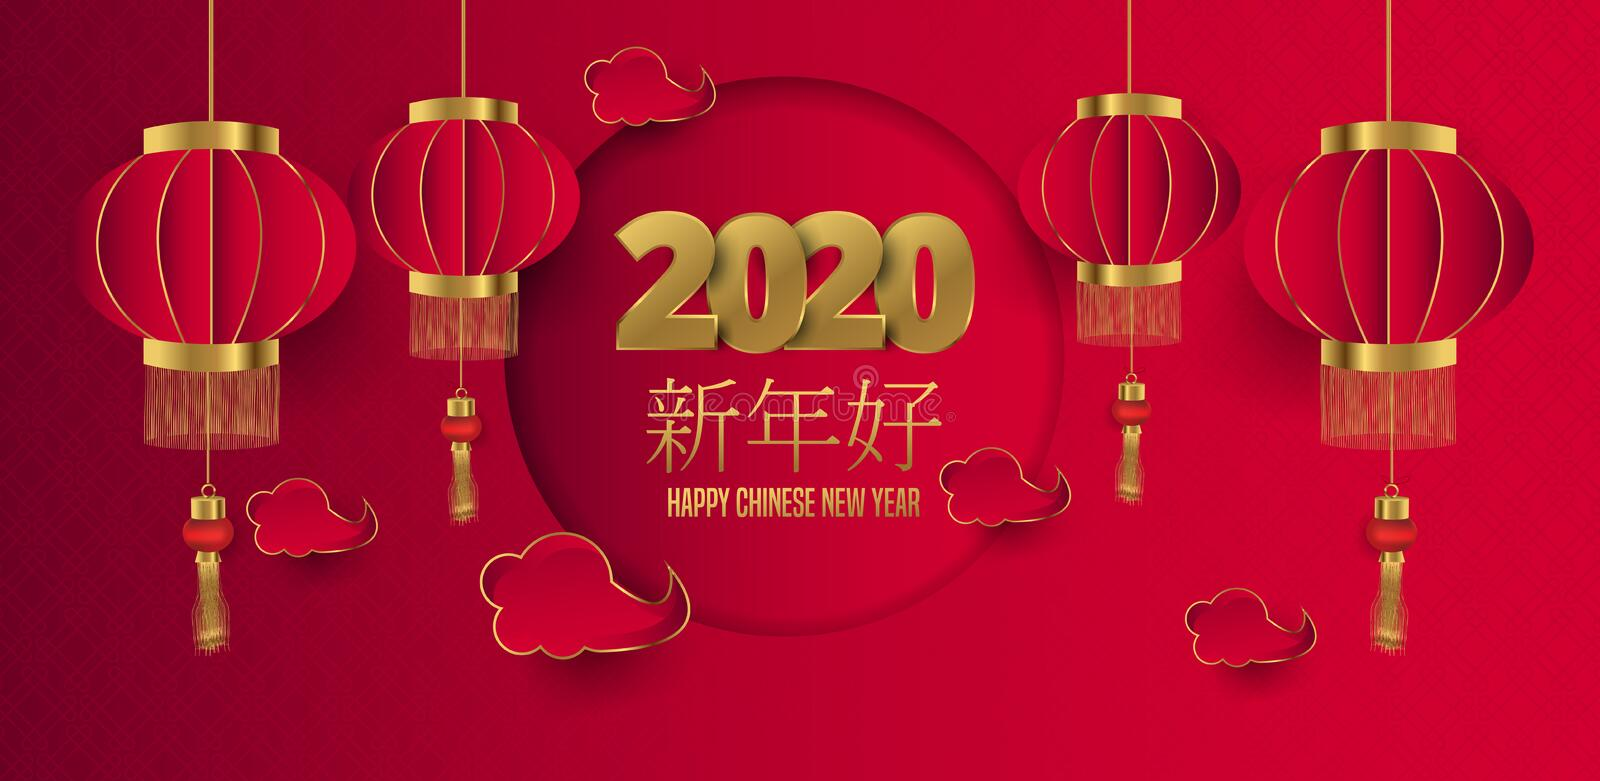 Chinese New Year 2020 traditional red greeting card illustration with traditional asian decoration, lanterns and clouds in gold royalty free illustration